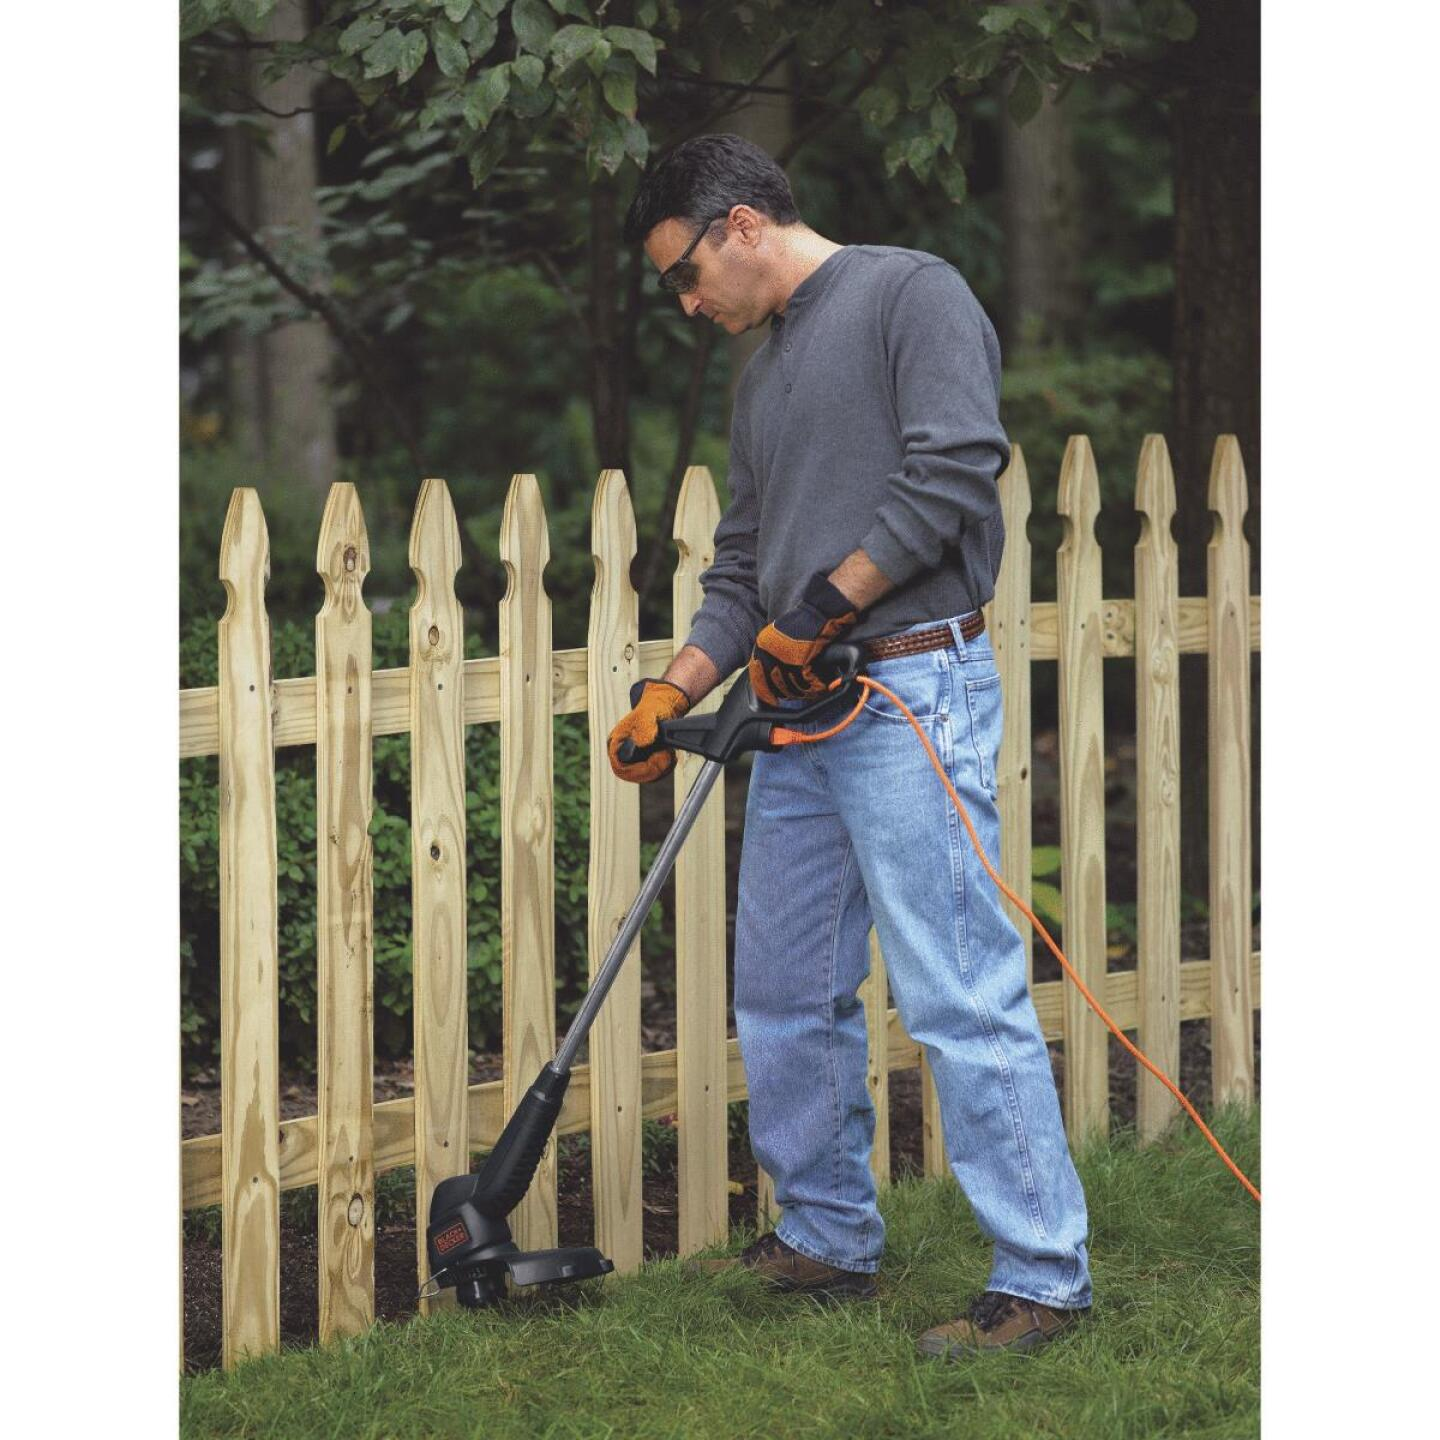 Black & Decker 12 In. 3.5-Amp Corded Electric String Trimmer Edger Image 5